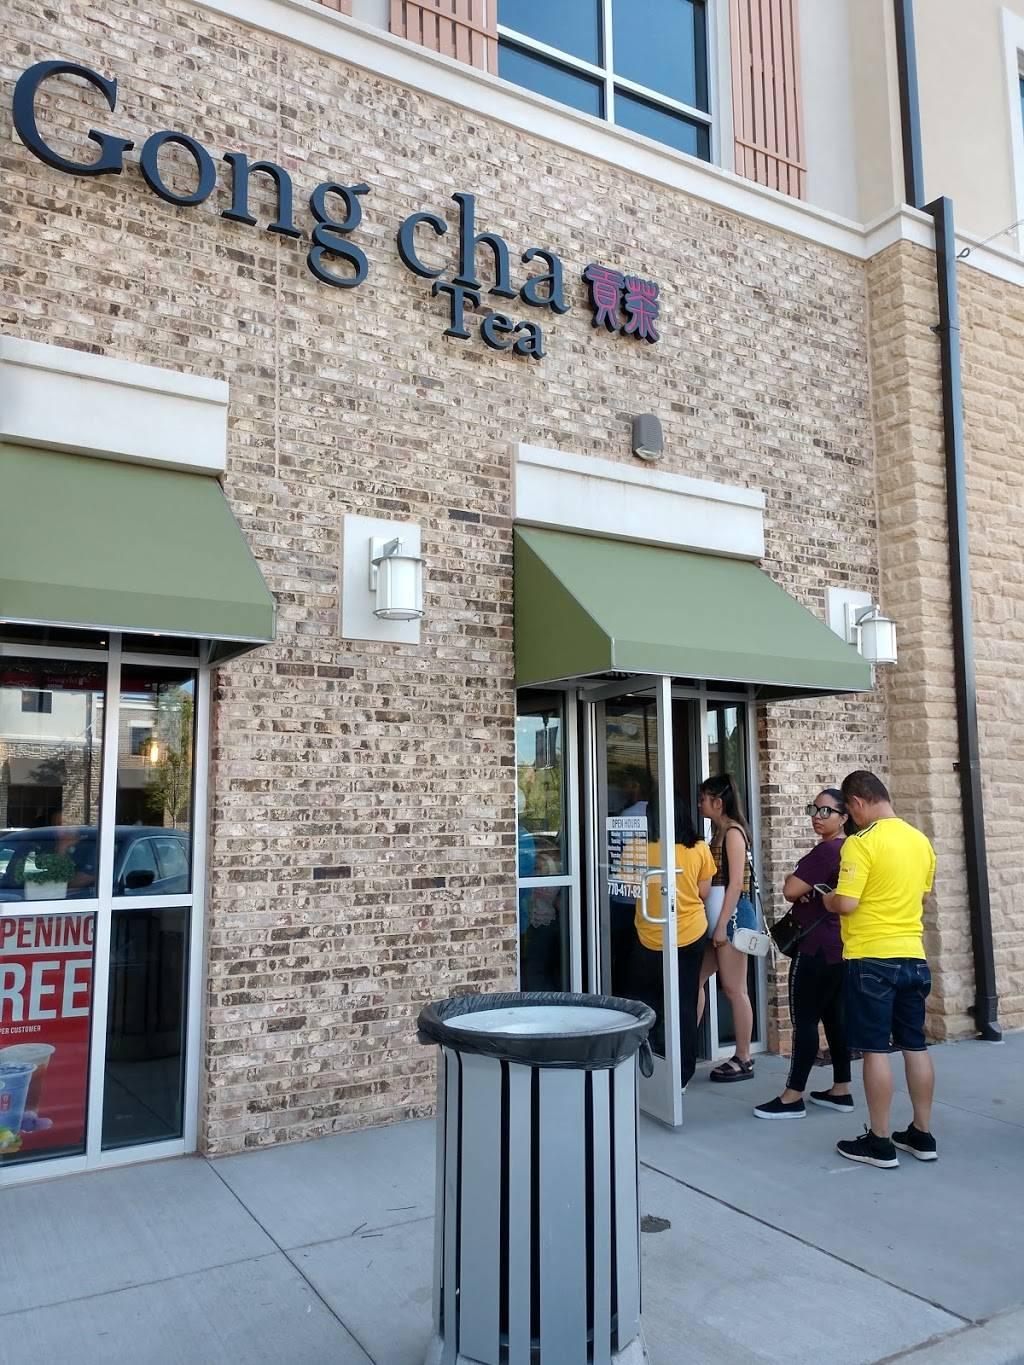 Gong Cha Peachtree Corners | cafe | 5210 Town Center Blvd Ste 220, Peachtree Corners, GA 30092, USA | 7704178223 OR +1 770-417-8223